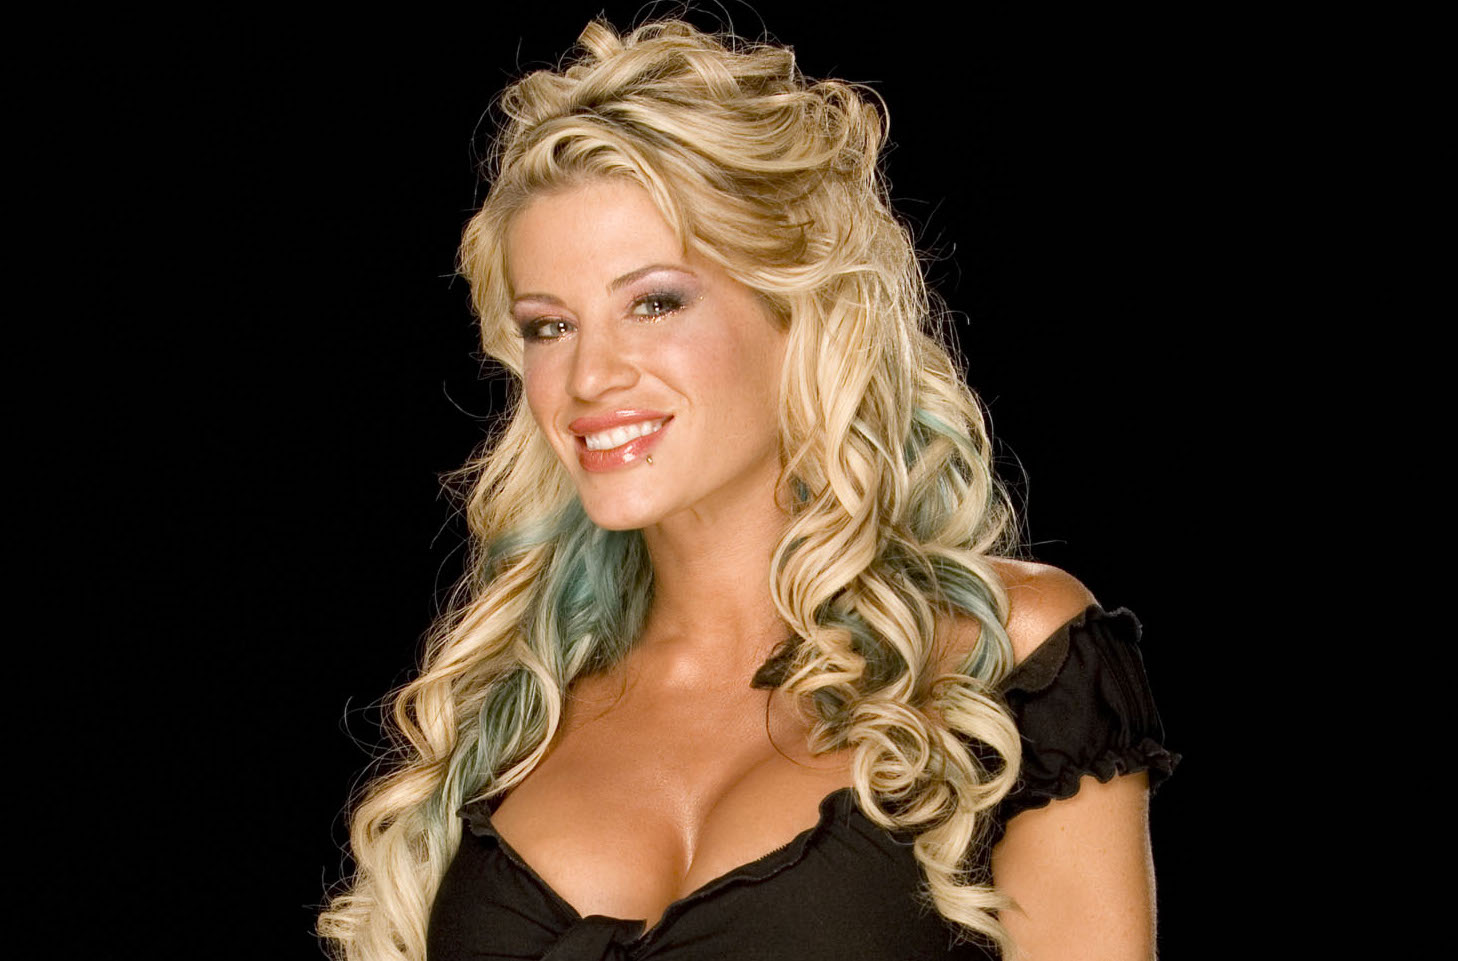 Ashley Massaro, former WWE superstar, died by suicide: report